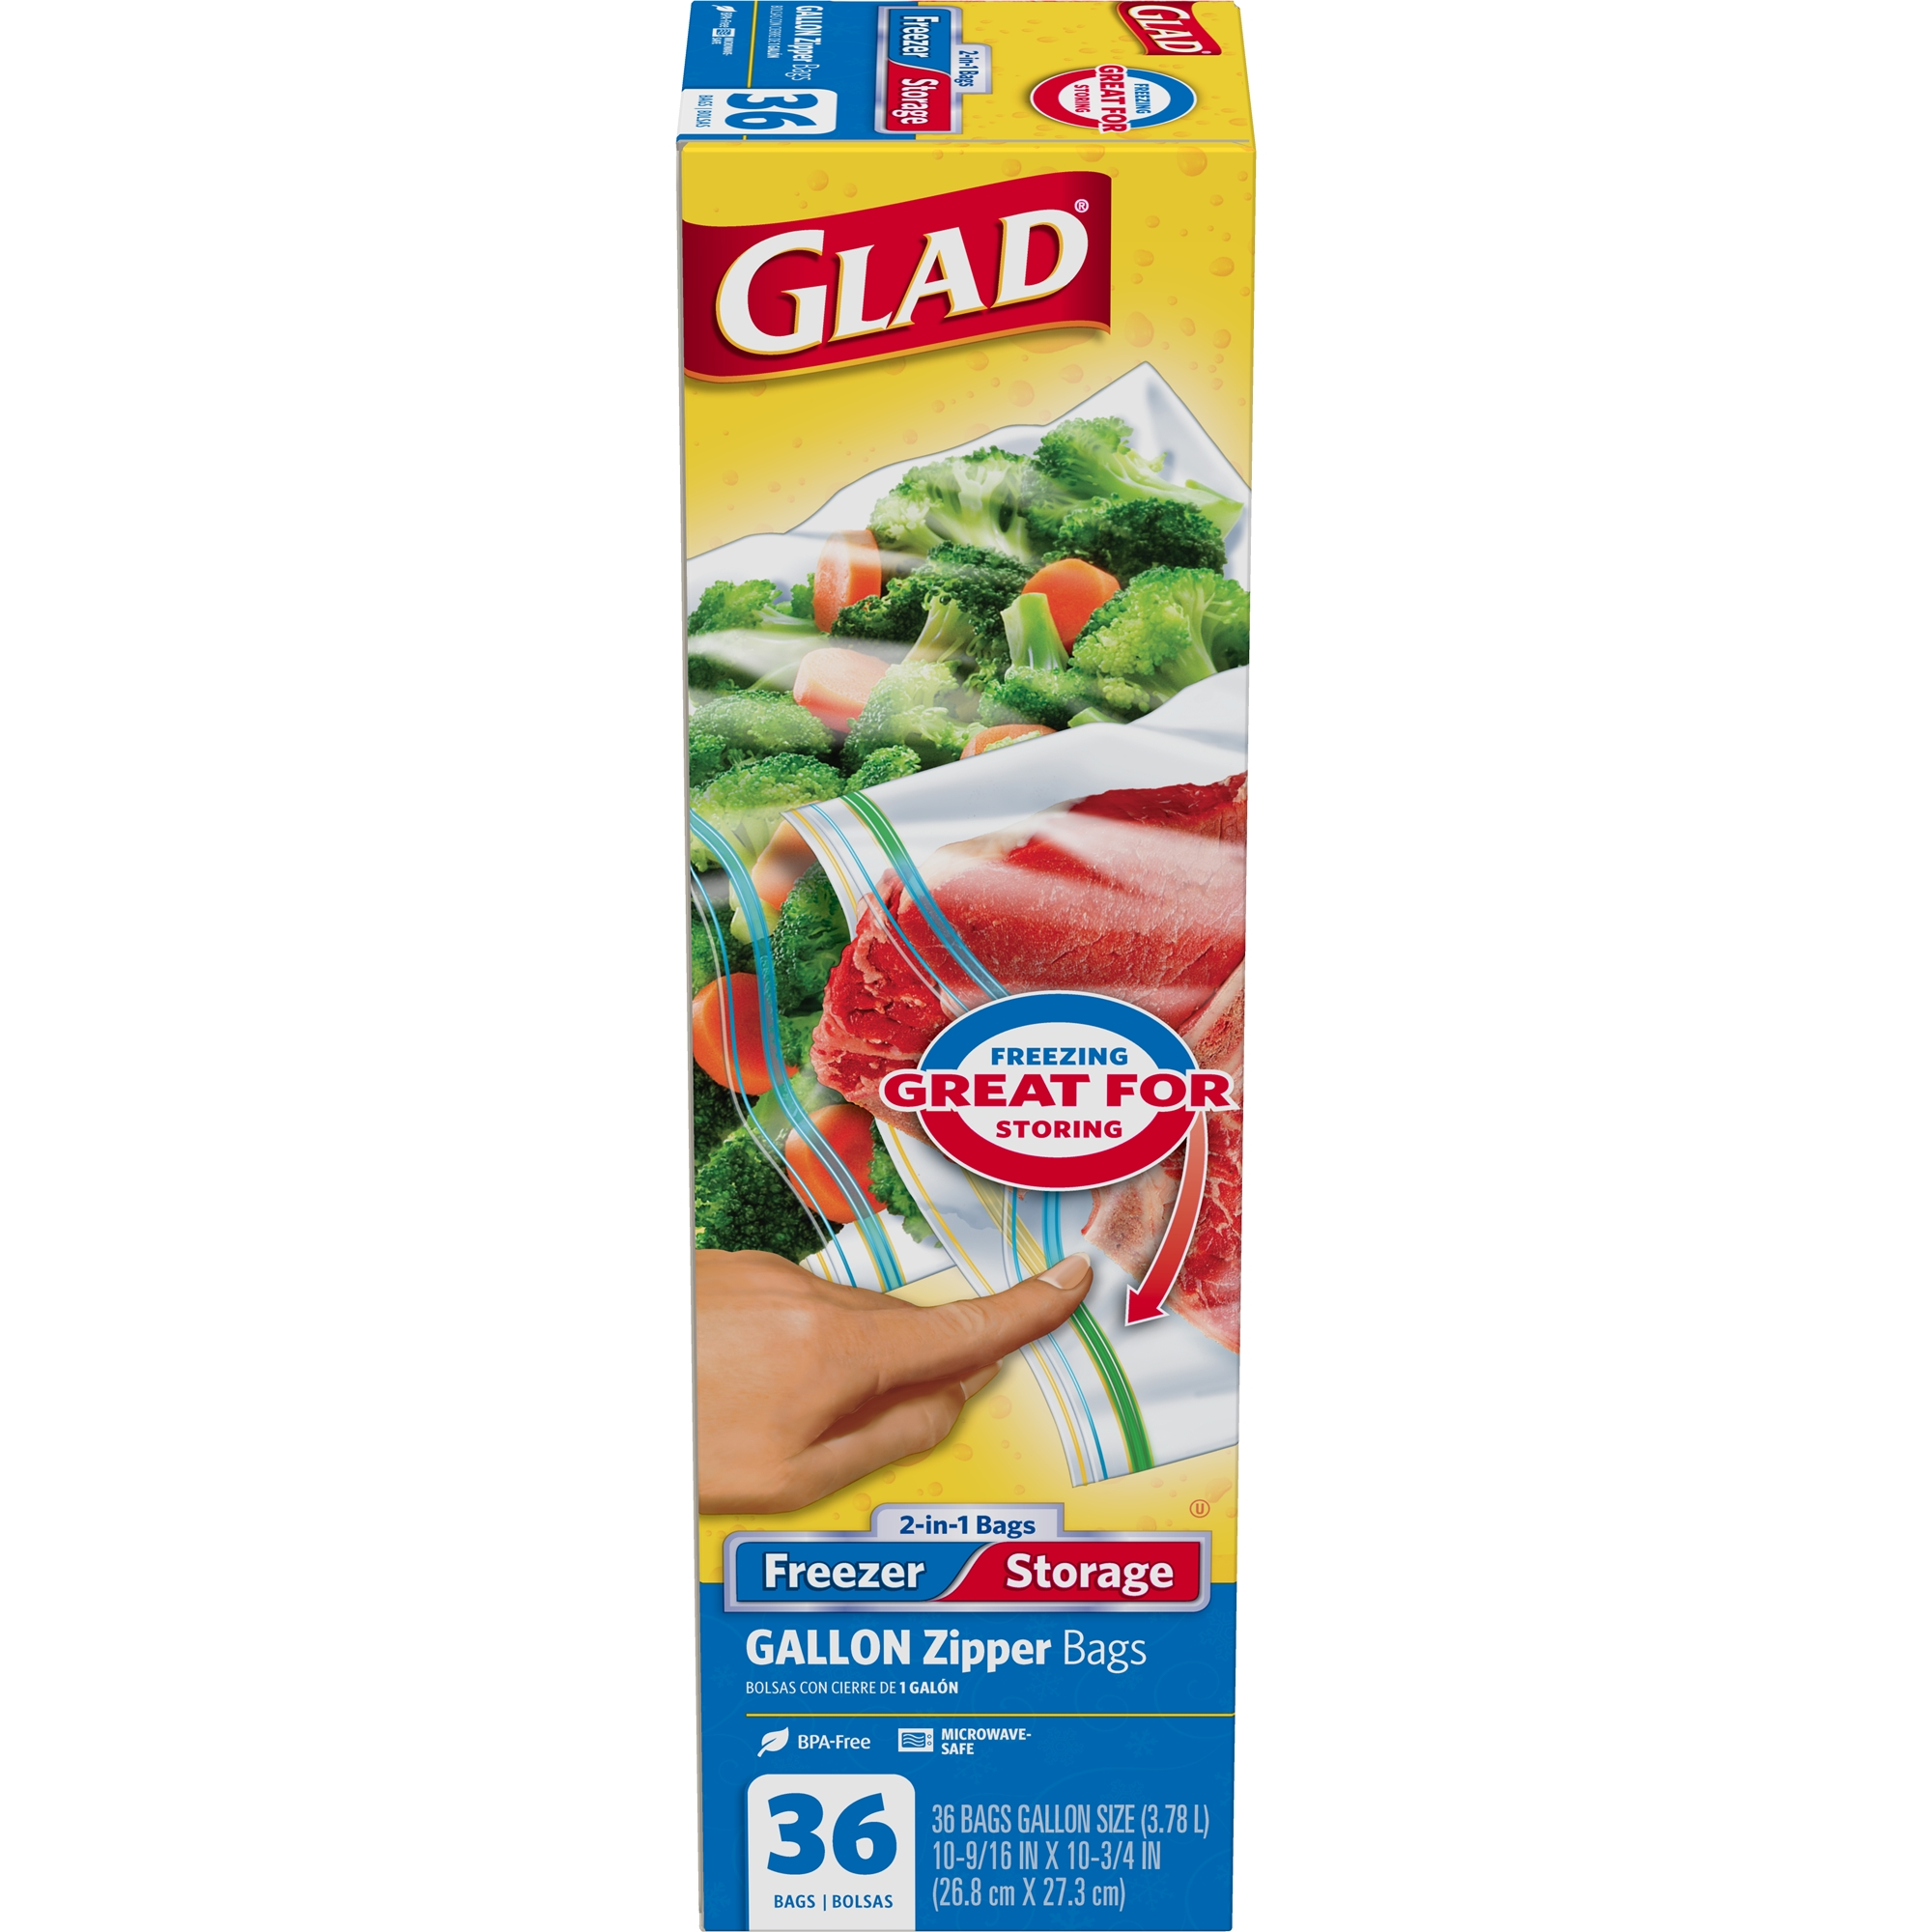 Glad Food Storage and Freezer 2 in 1 Zipper Bags - 1 gal - 36 ct